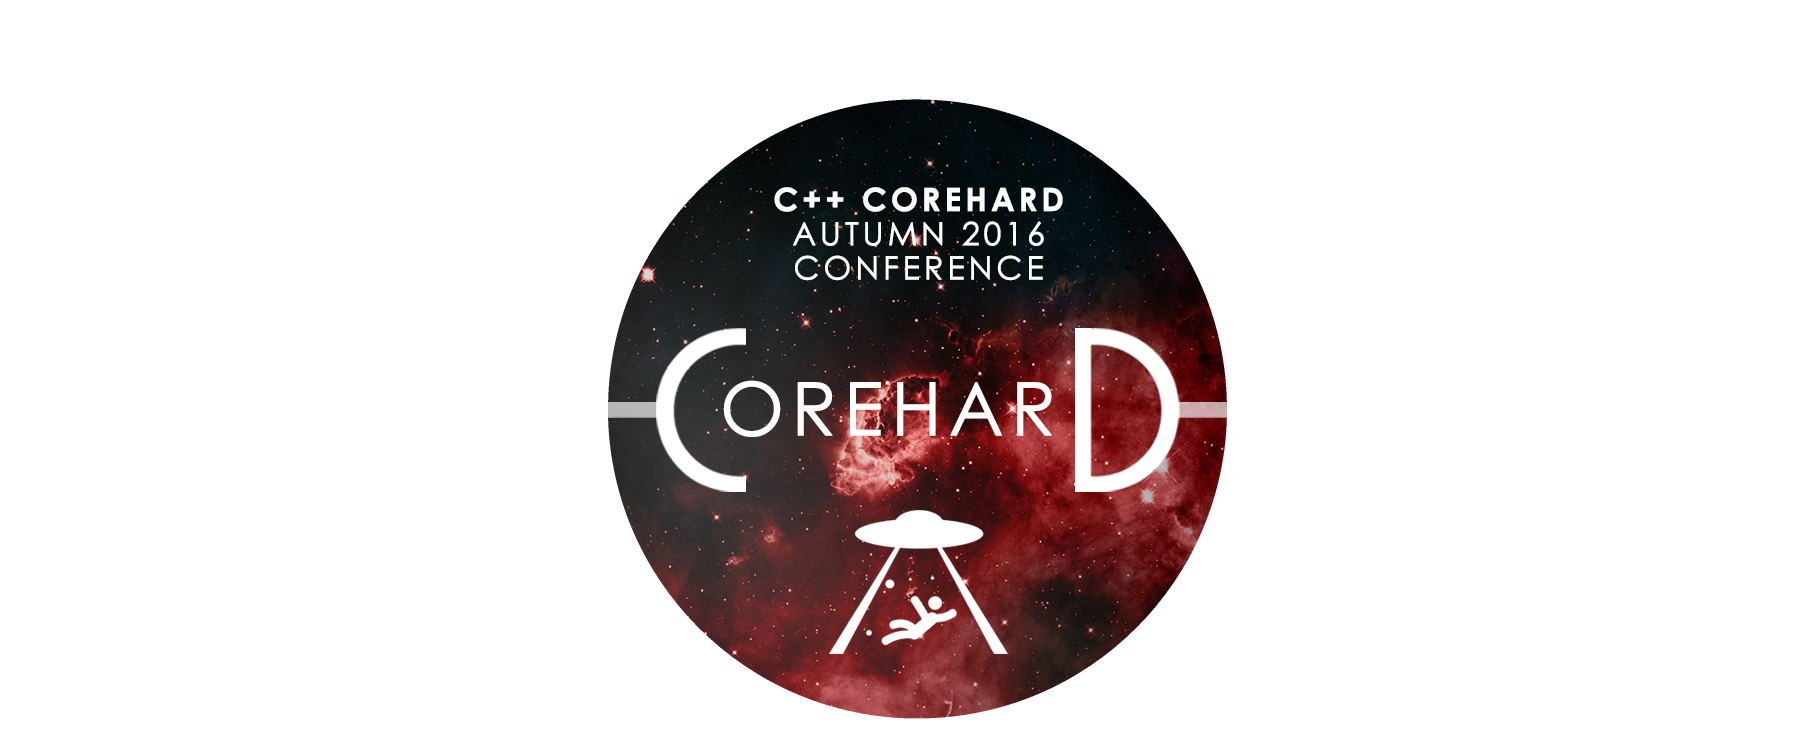 C++ CoreHard Autumn 2016 Conference